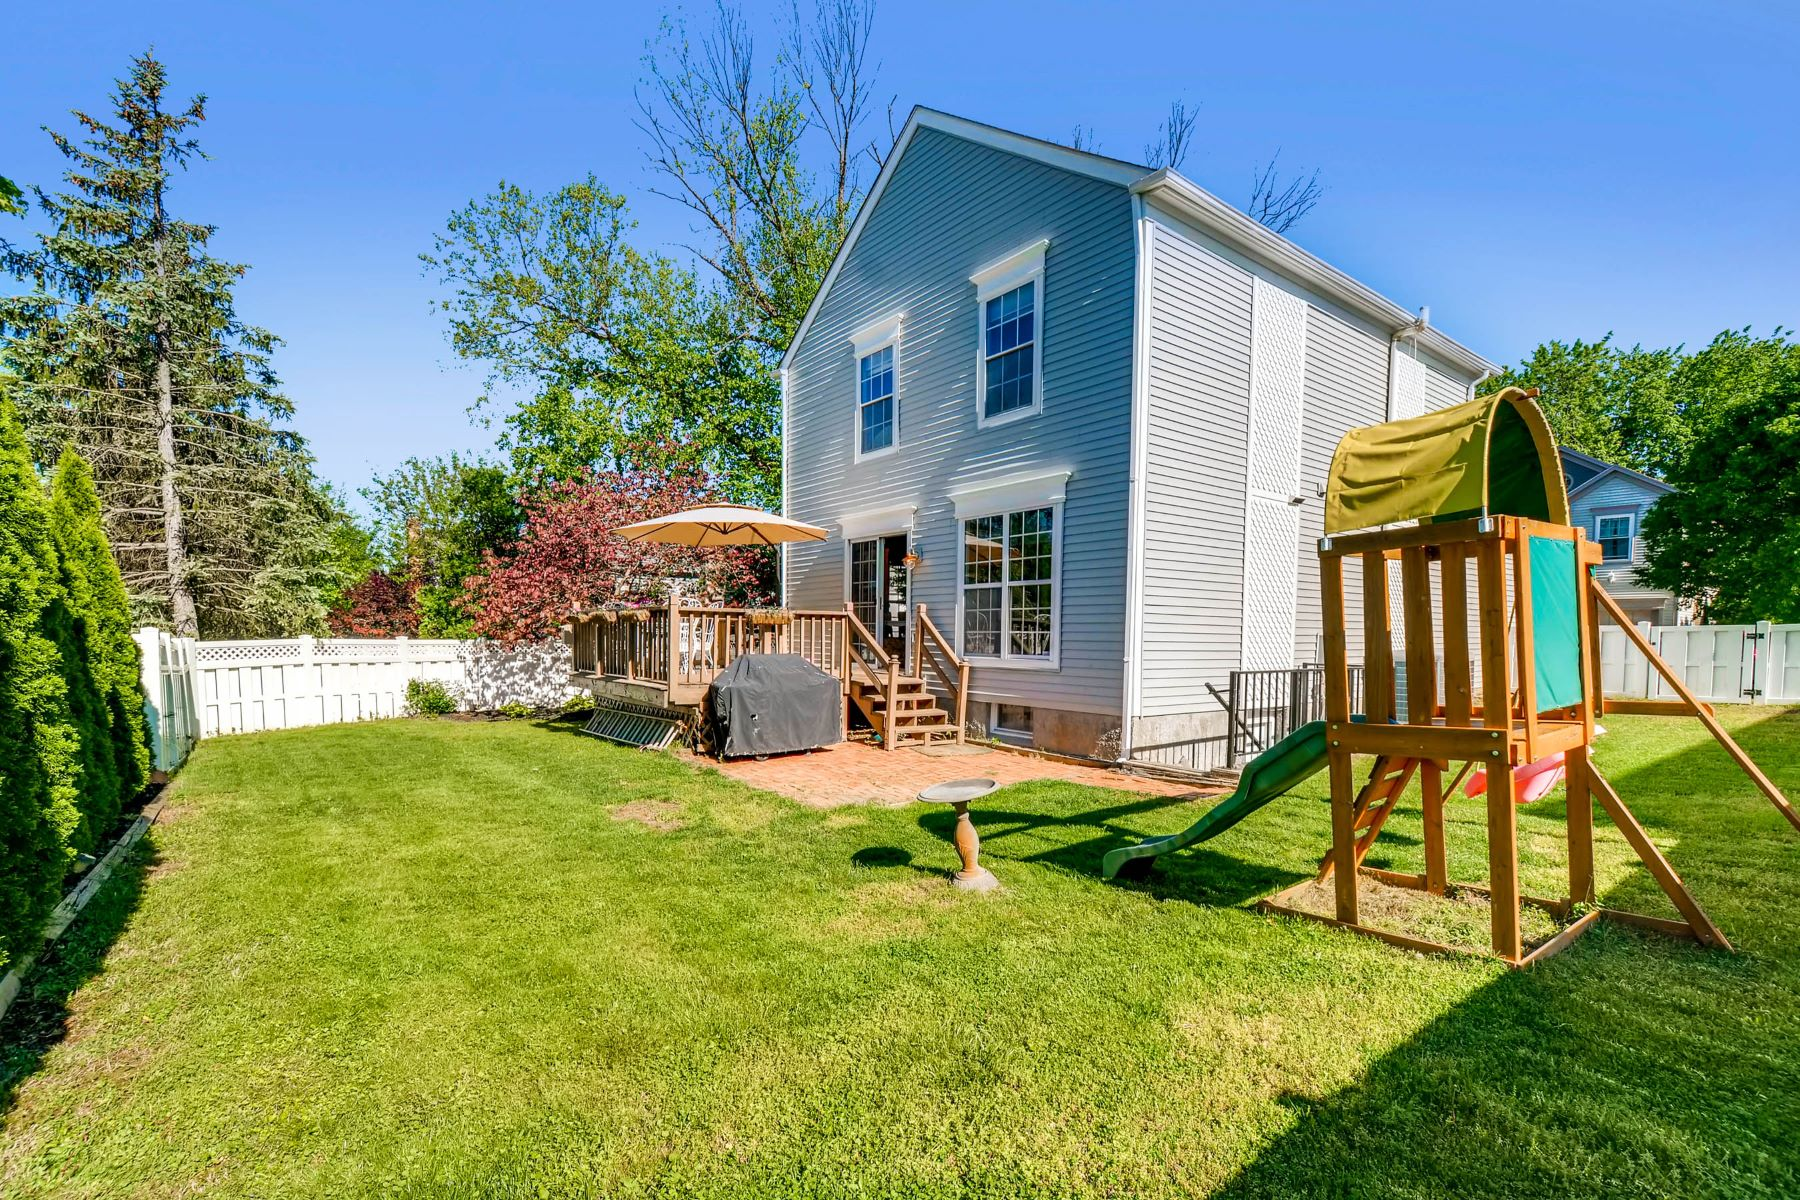 Additional photo for property listing at Padonia Complex 1032 Seminary Ave W. Lutherville Timonium, Maryland 21093 Verenigde Staten